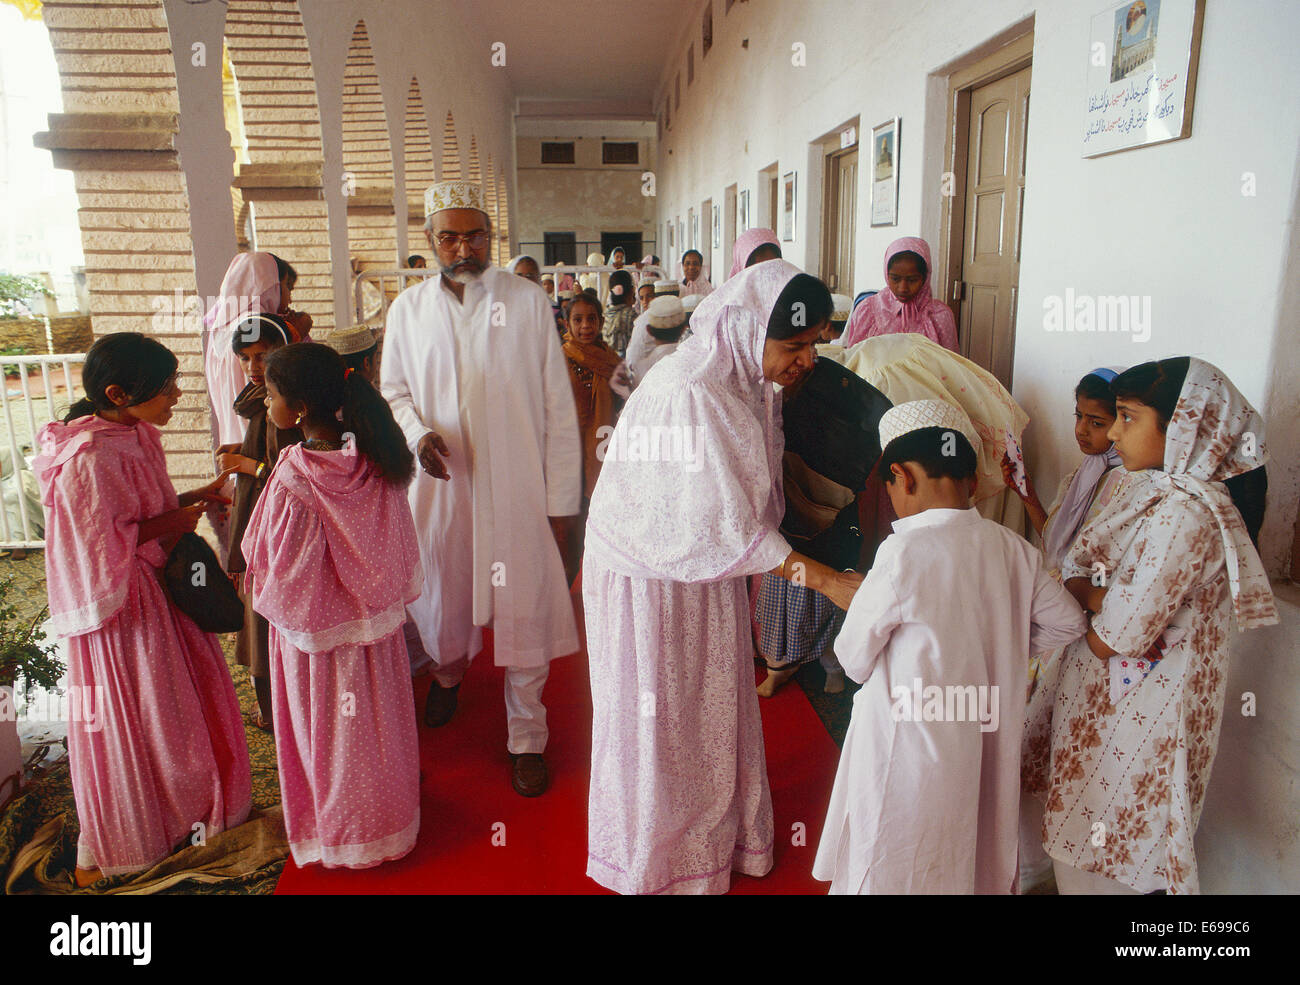 People belonging to the Dawoodi Bohra community ( India) - Stock Image